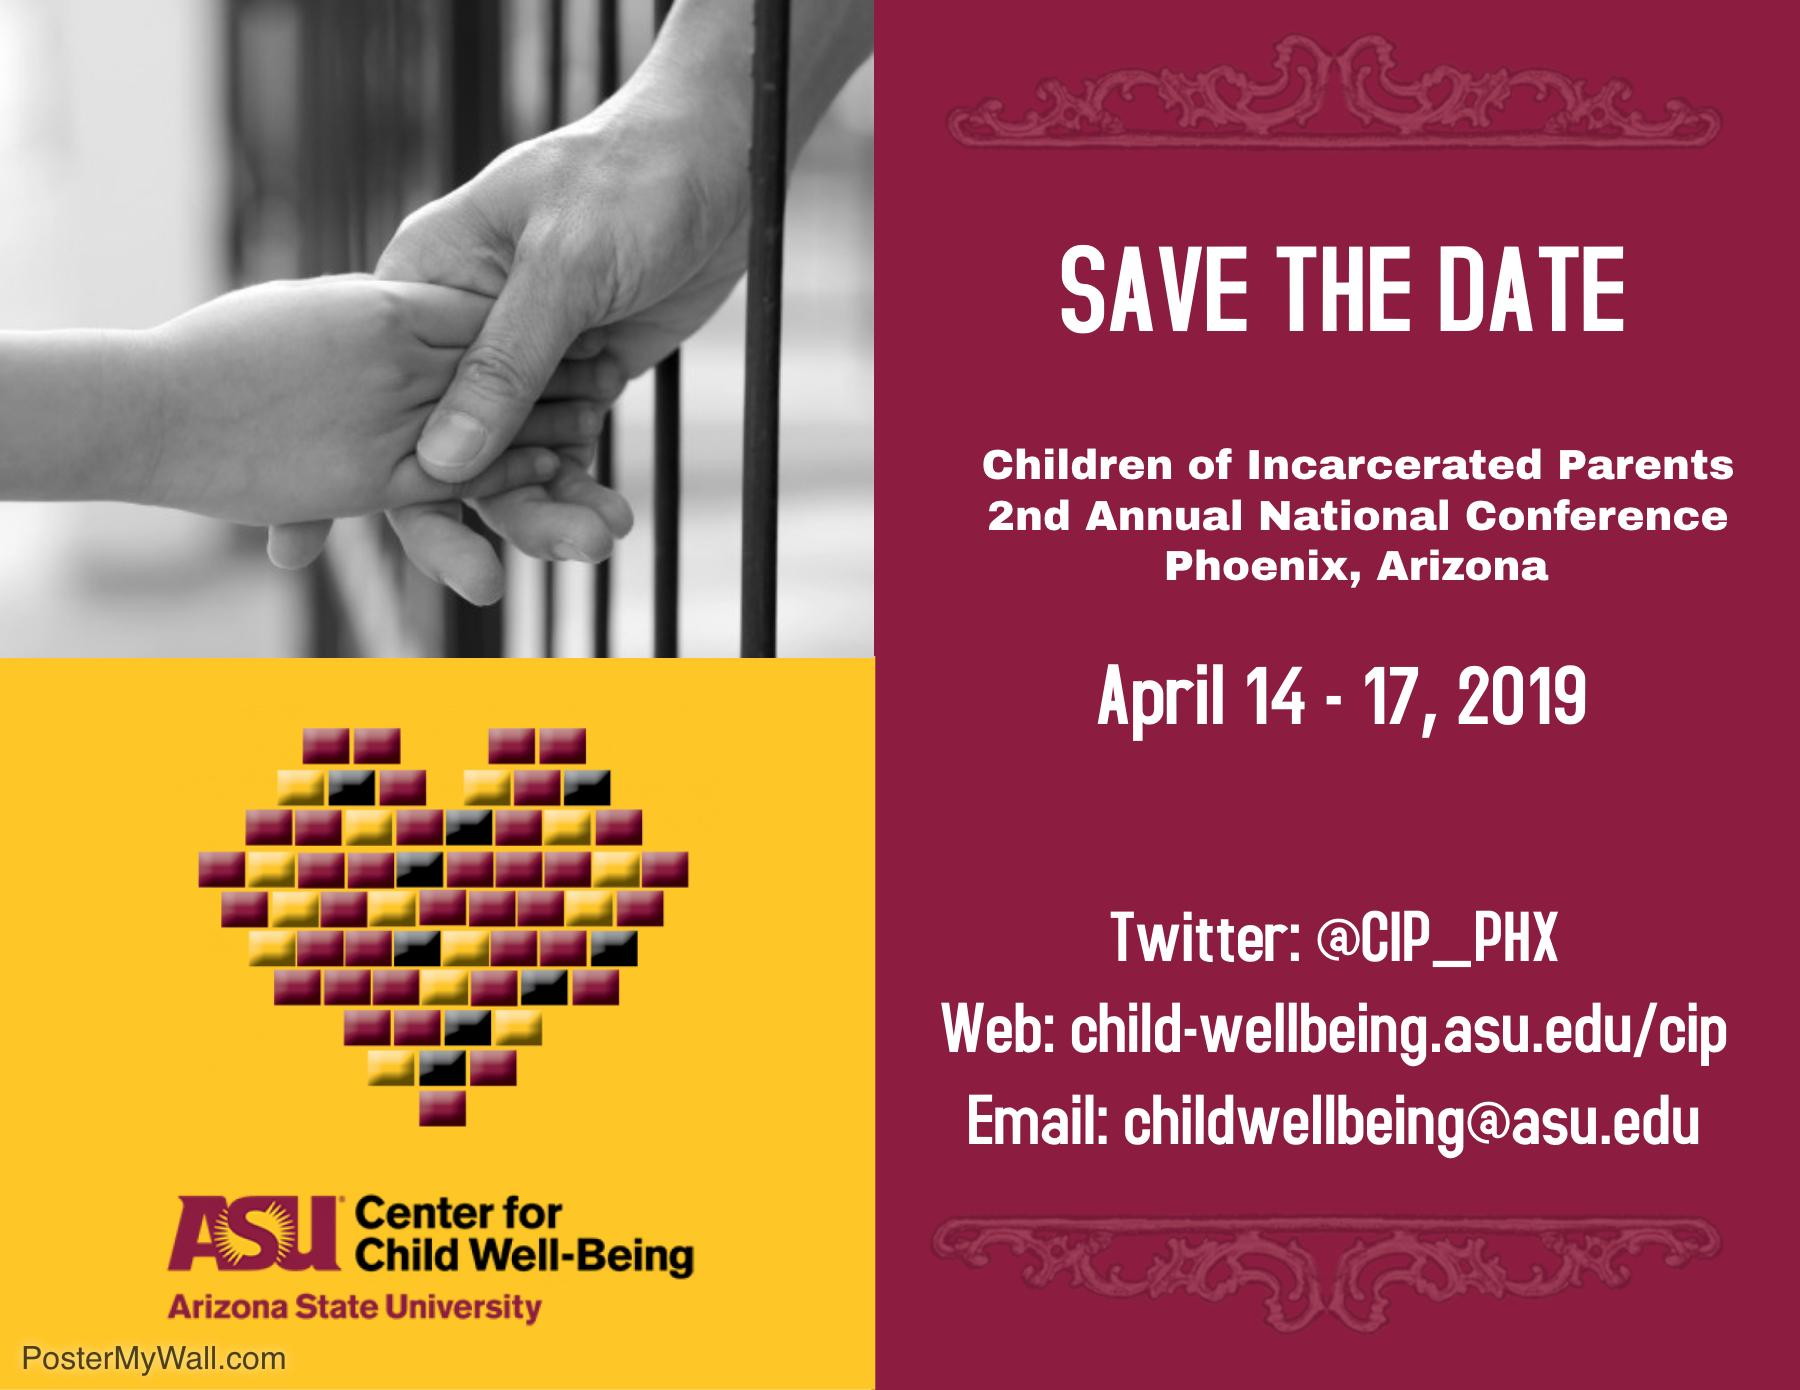 asu center for child well